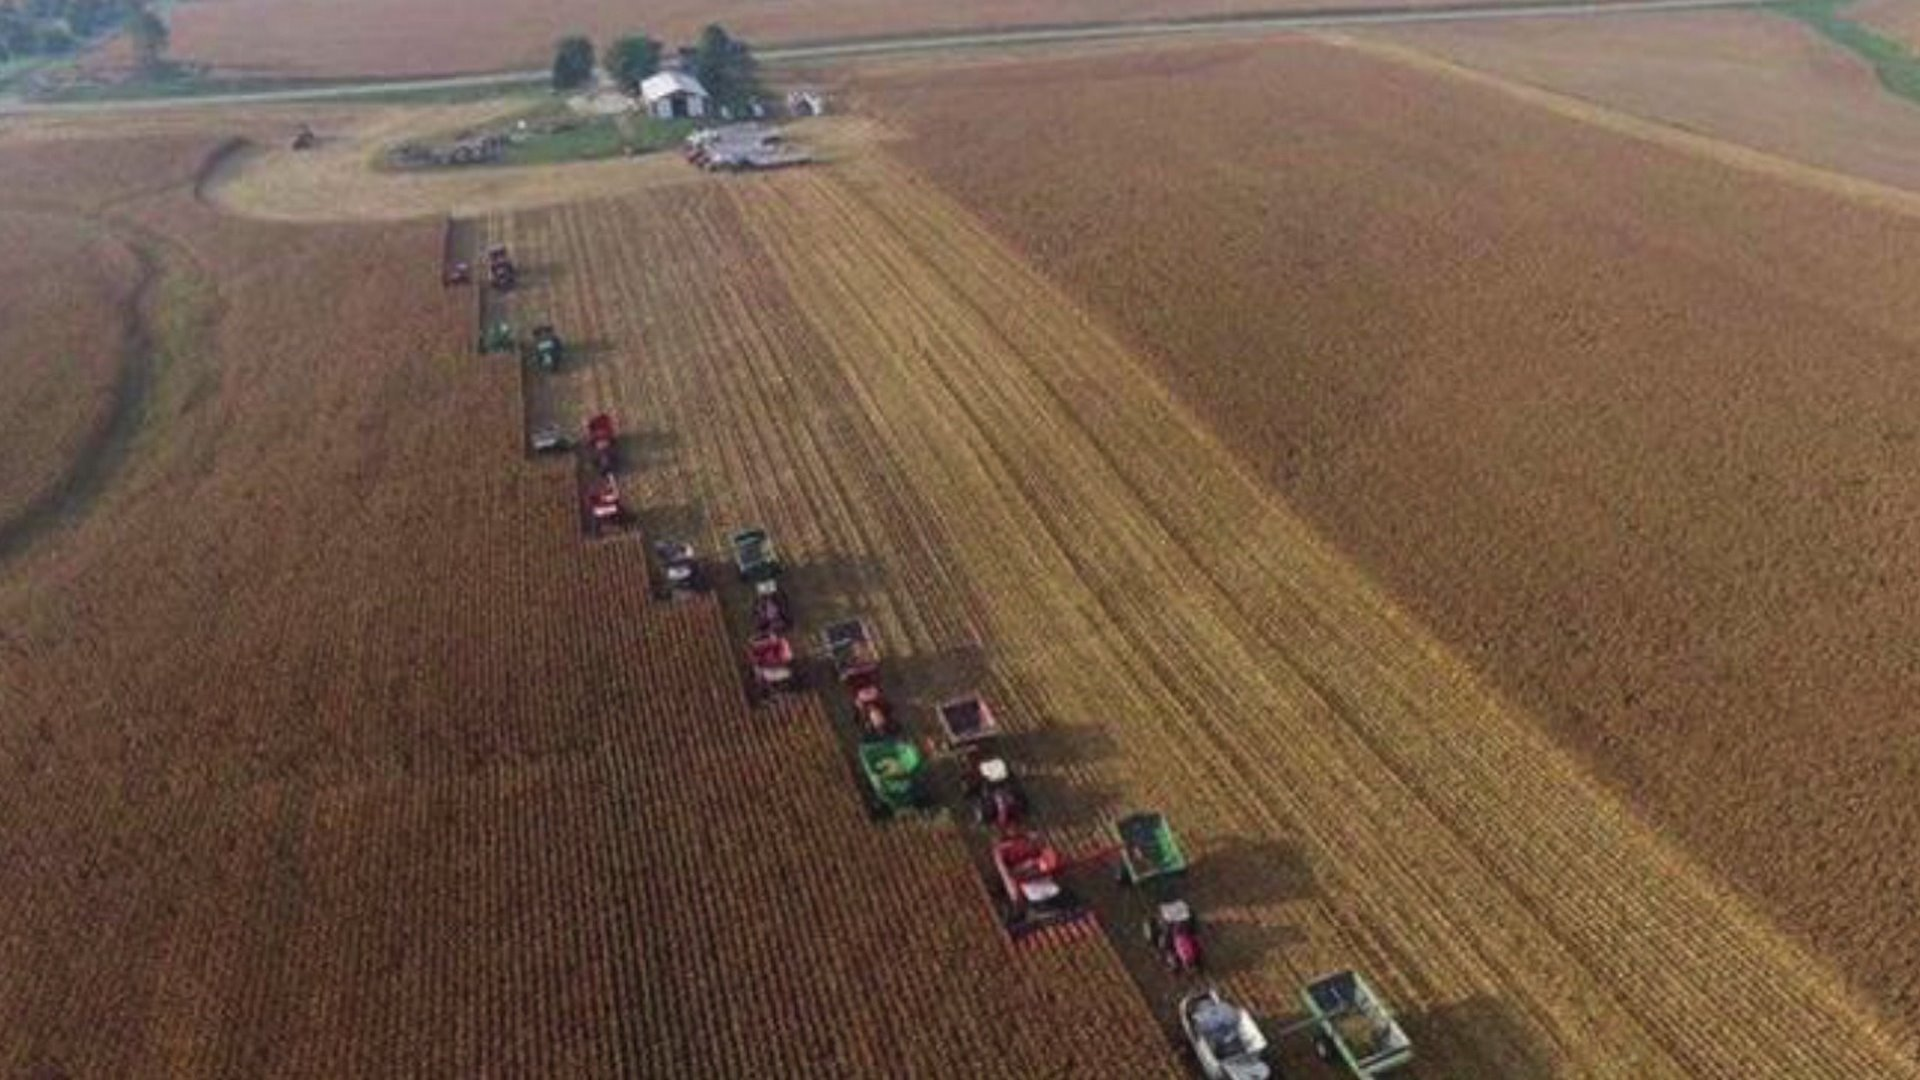 Neighbors rally to help Illinois farmer battling terminal cancer 1920x1080